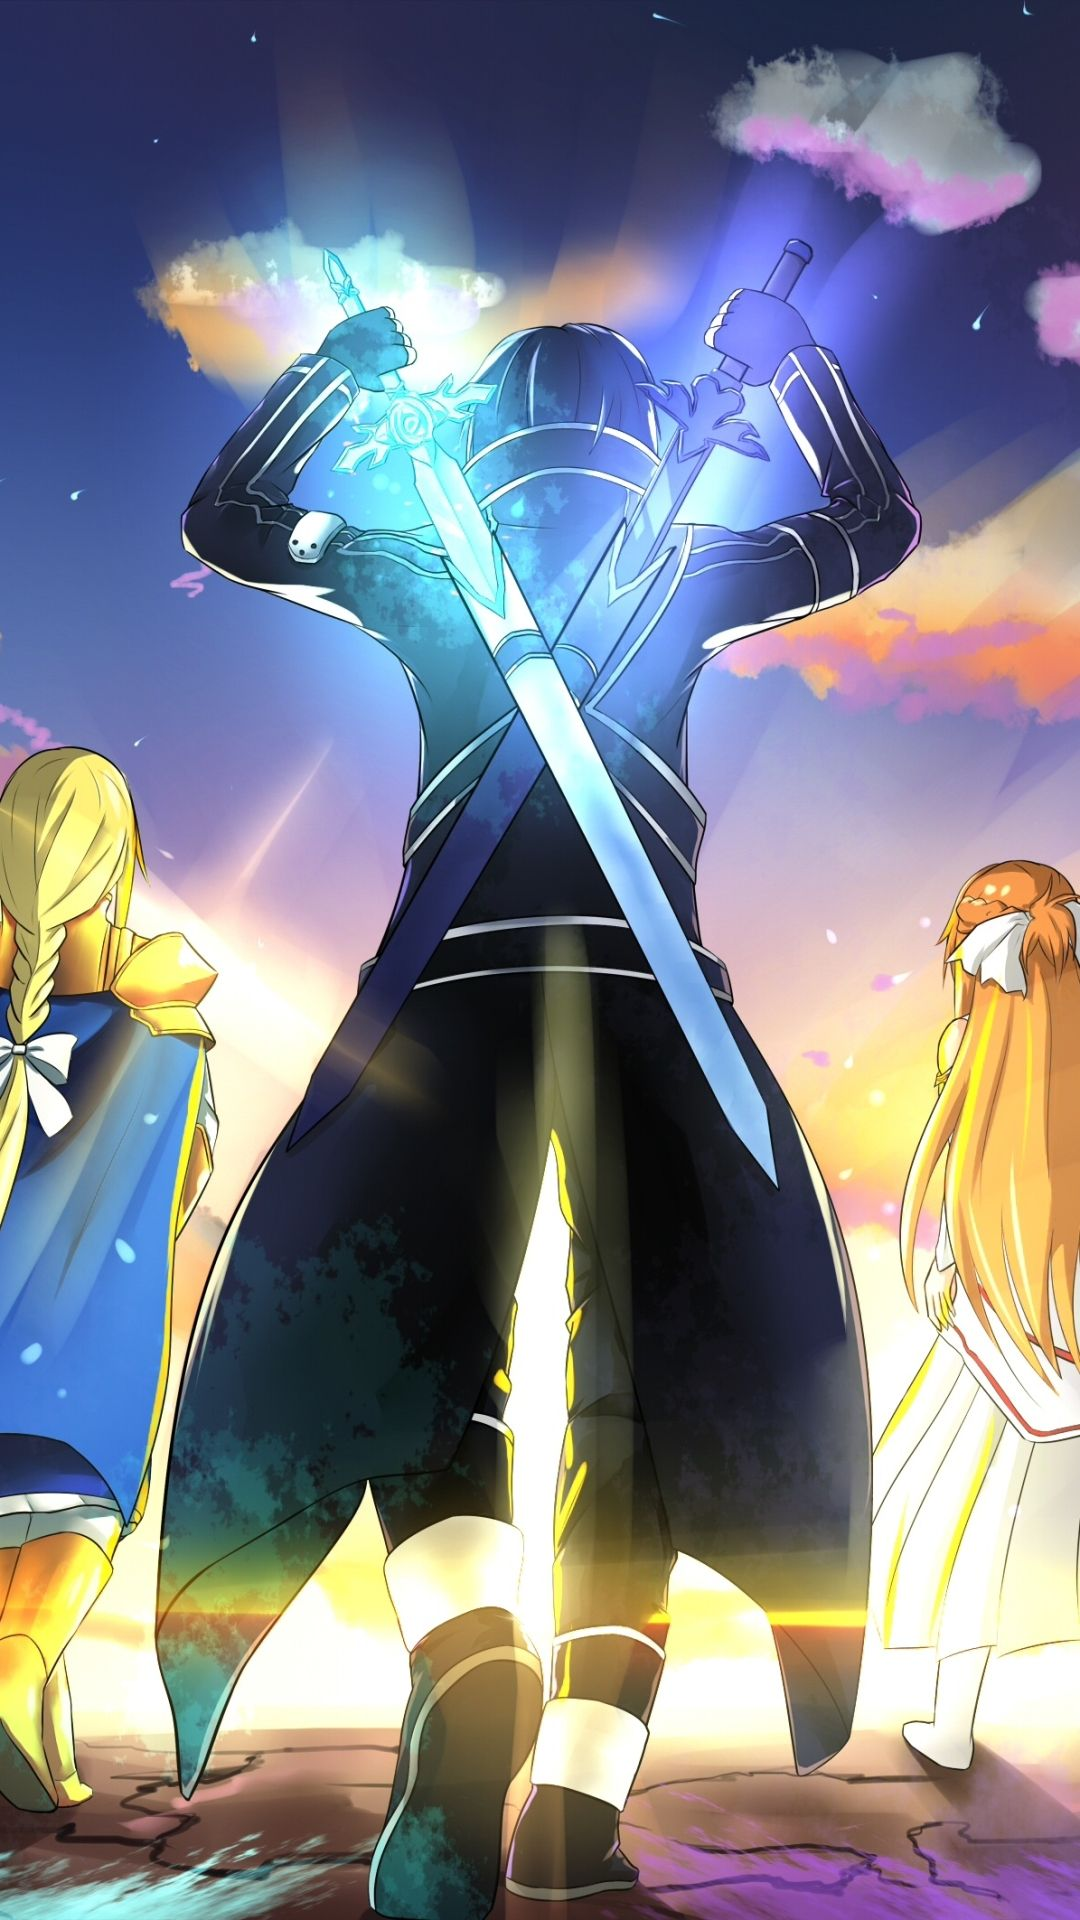 17 Sword Art Online Alicization Iphone Wallpapers Wallpaperboat